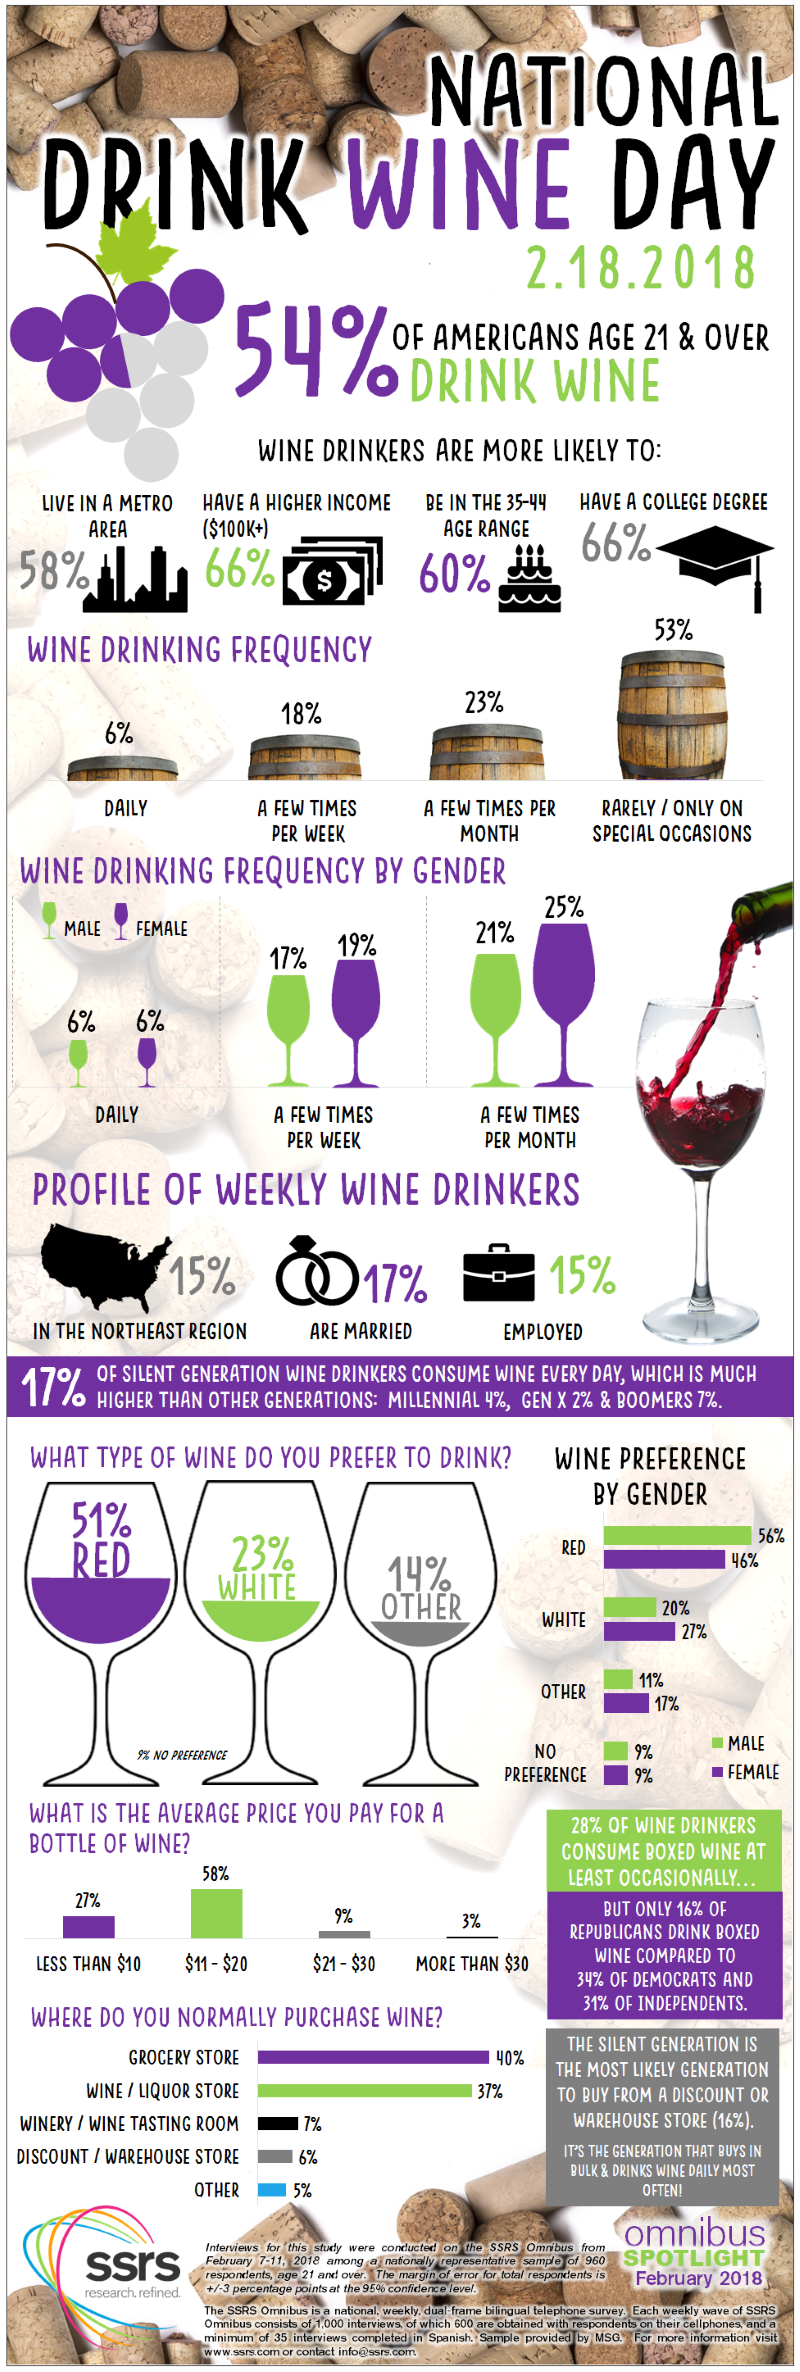 National Drink Wine Day 2018